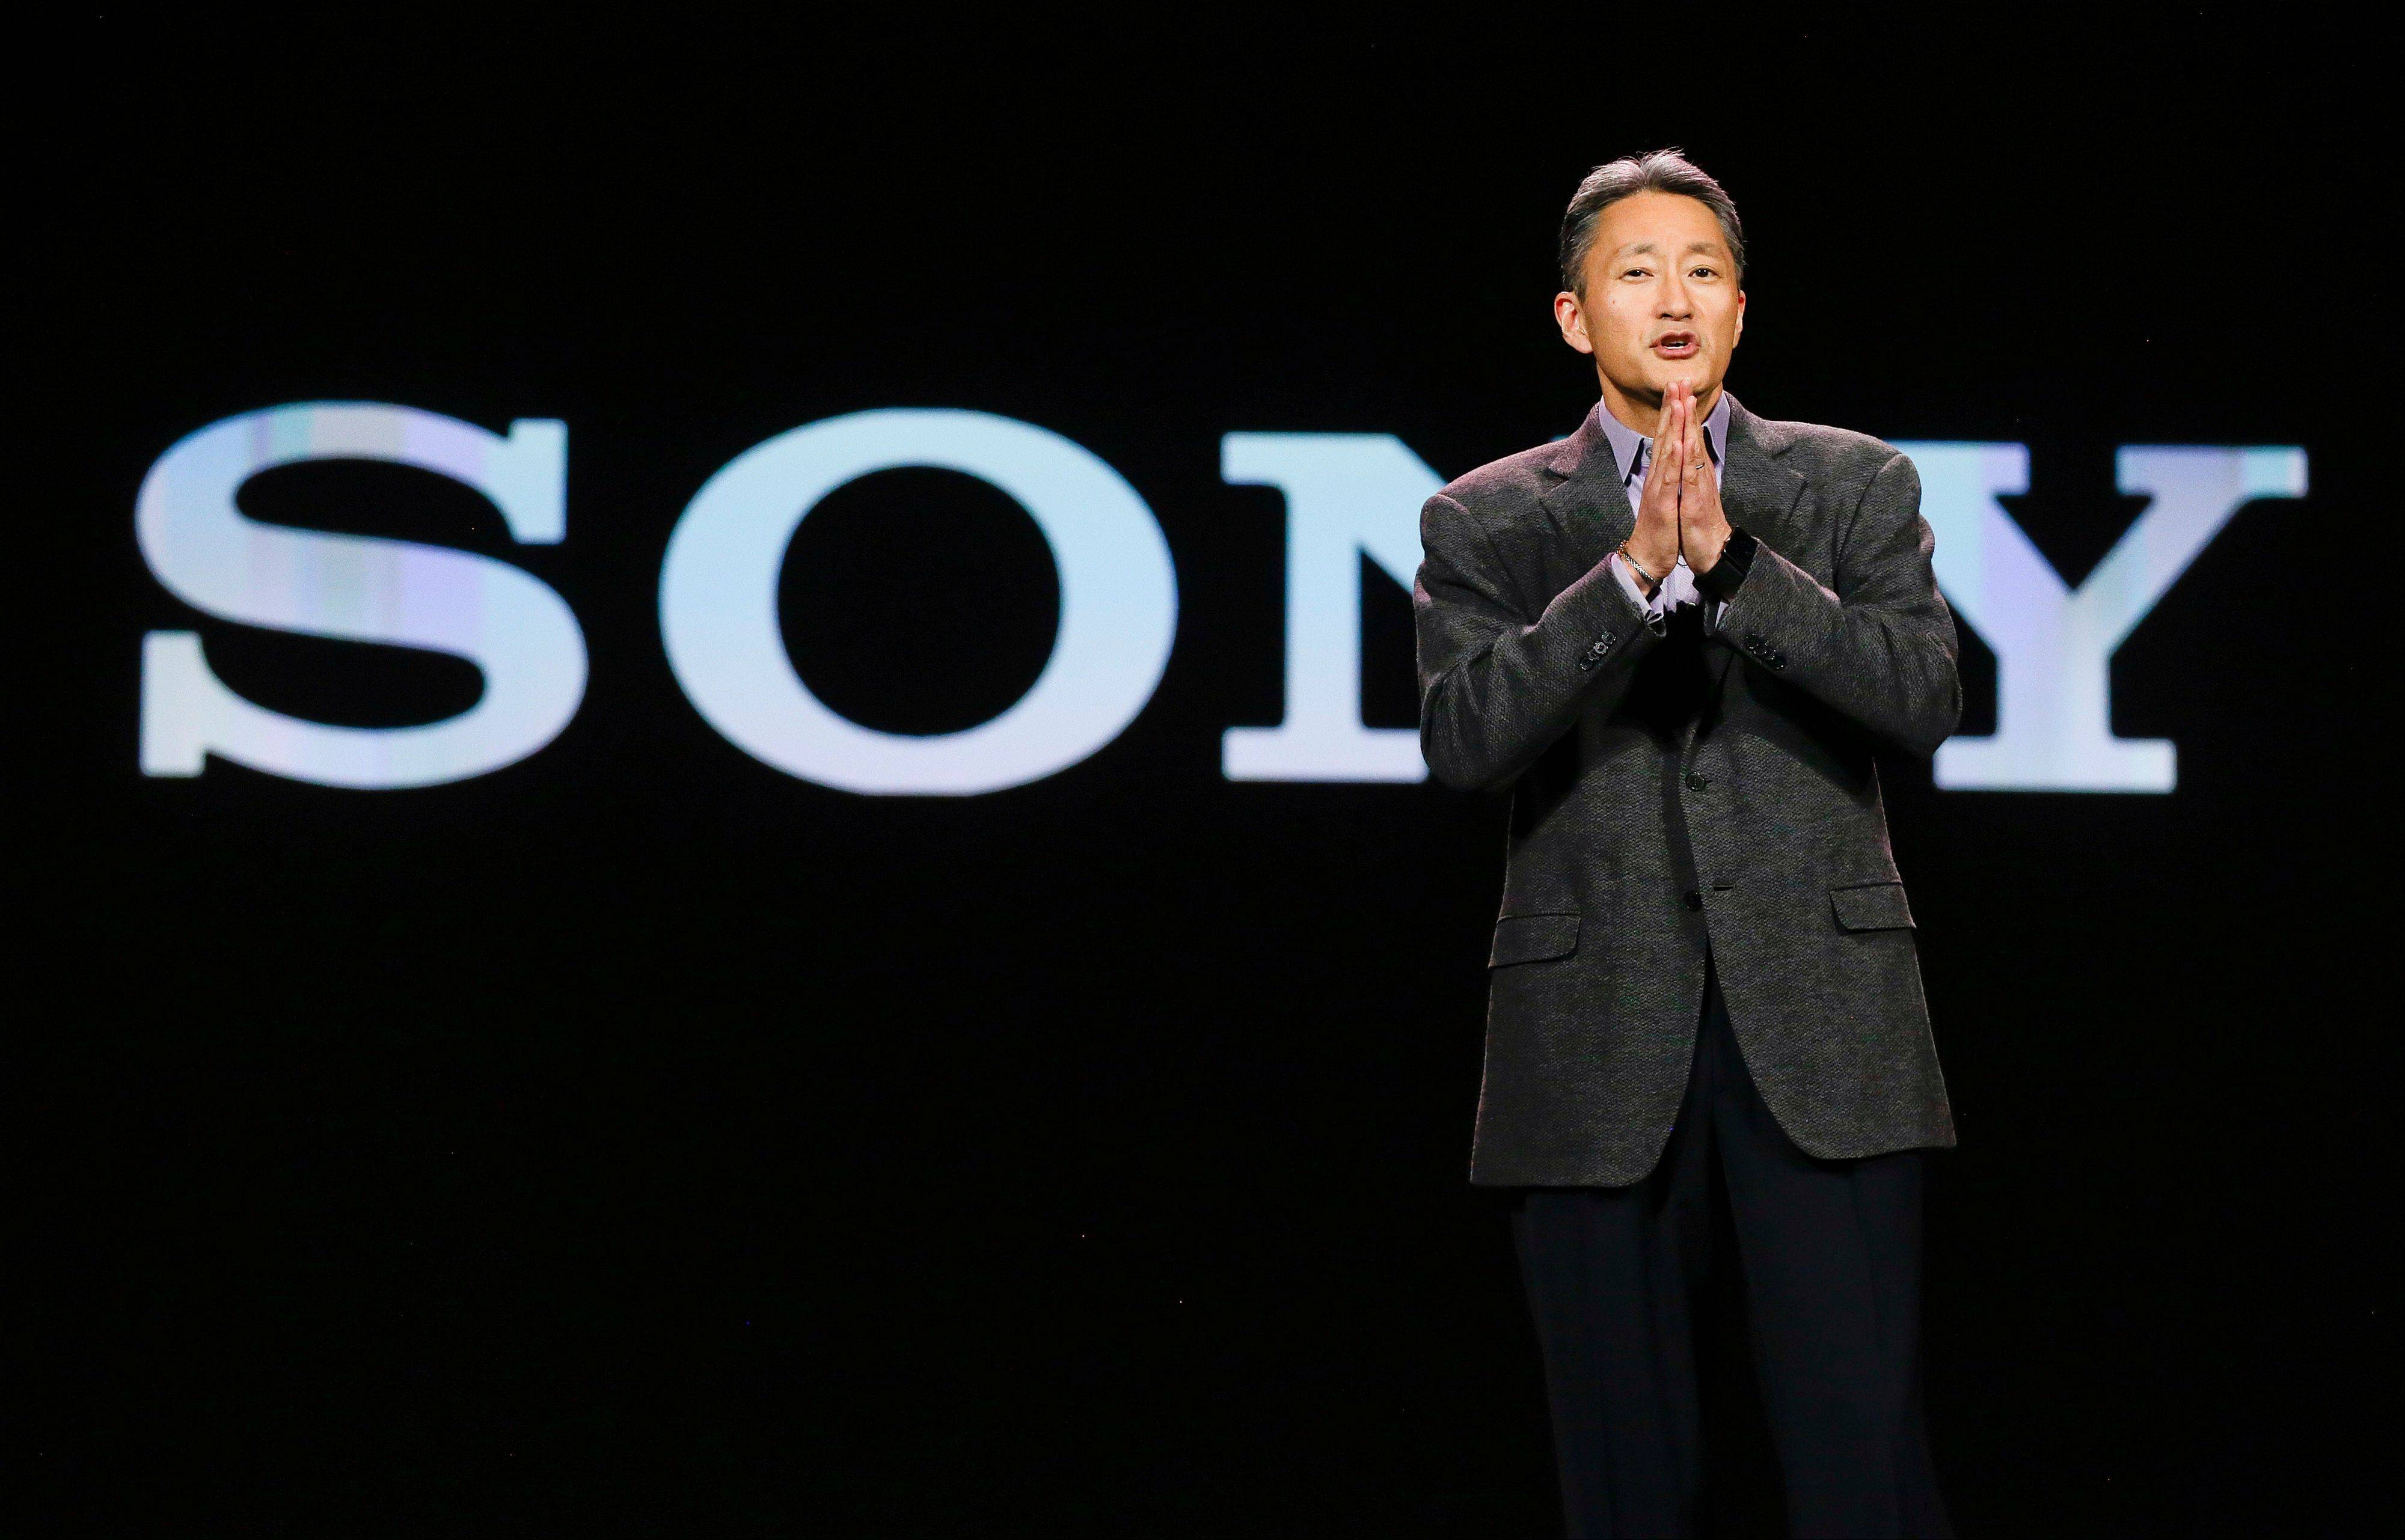 Sony Corporation president and CEO Kazuo Hirai speaks during a keynote address at the International Consumer Electronics Show, in Las Vegas.